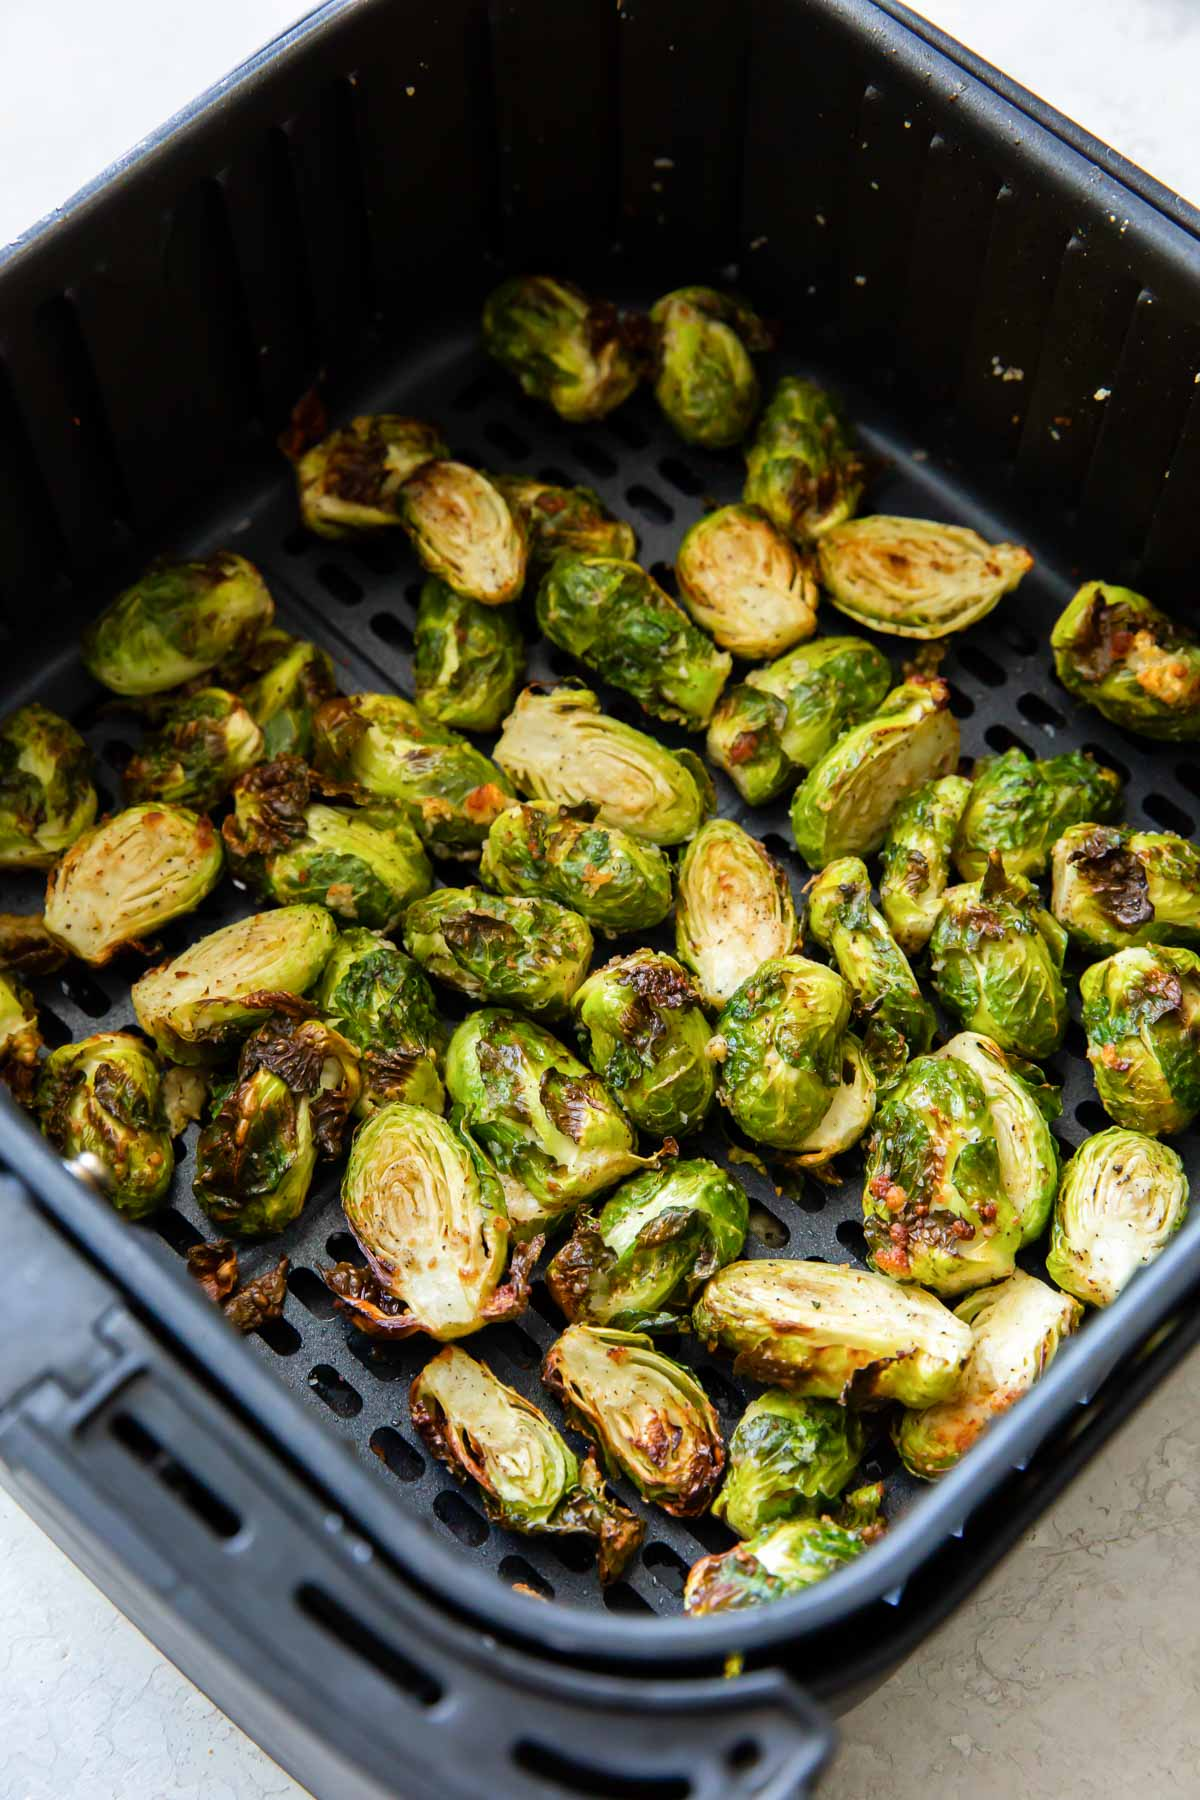 cooked brussels sprouts in air fryer basket